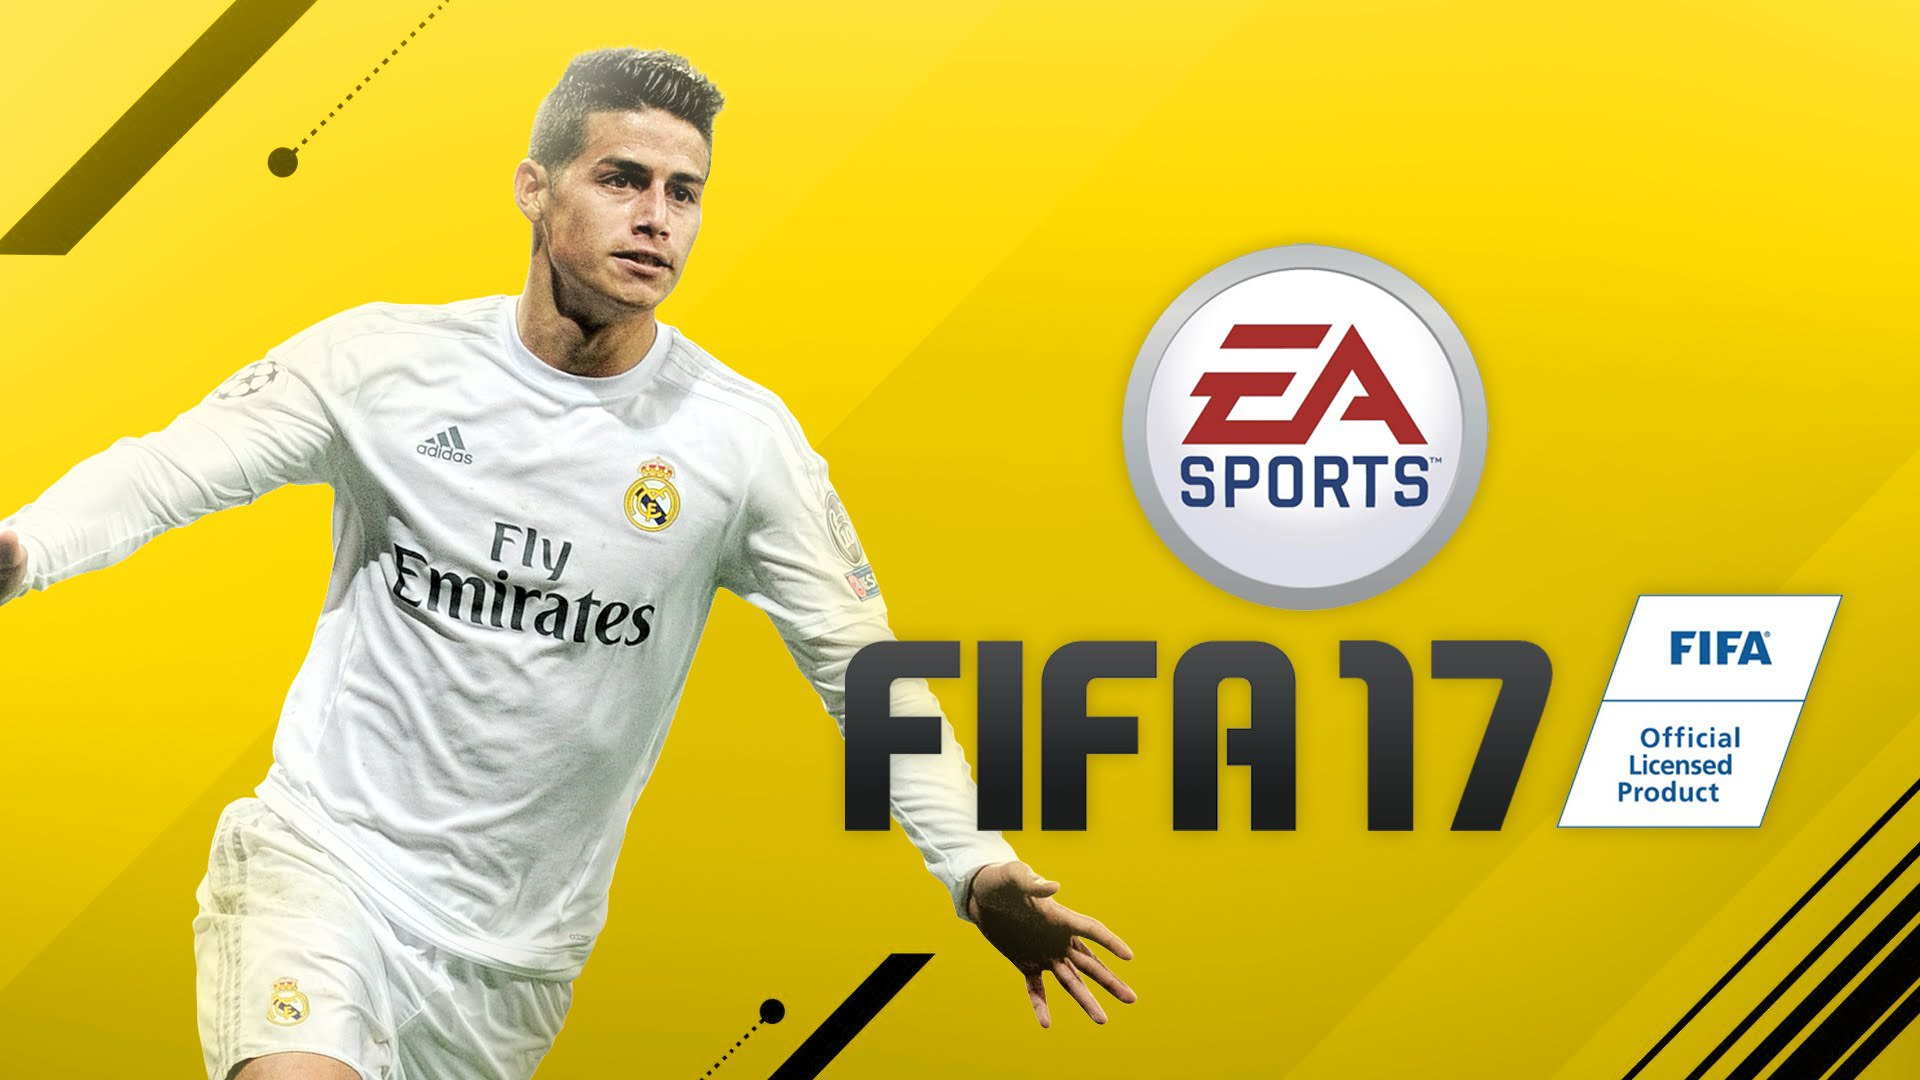 FIFA 17 Wallpapers HD